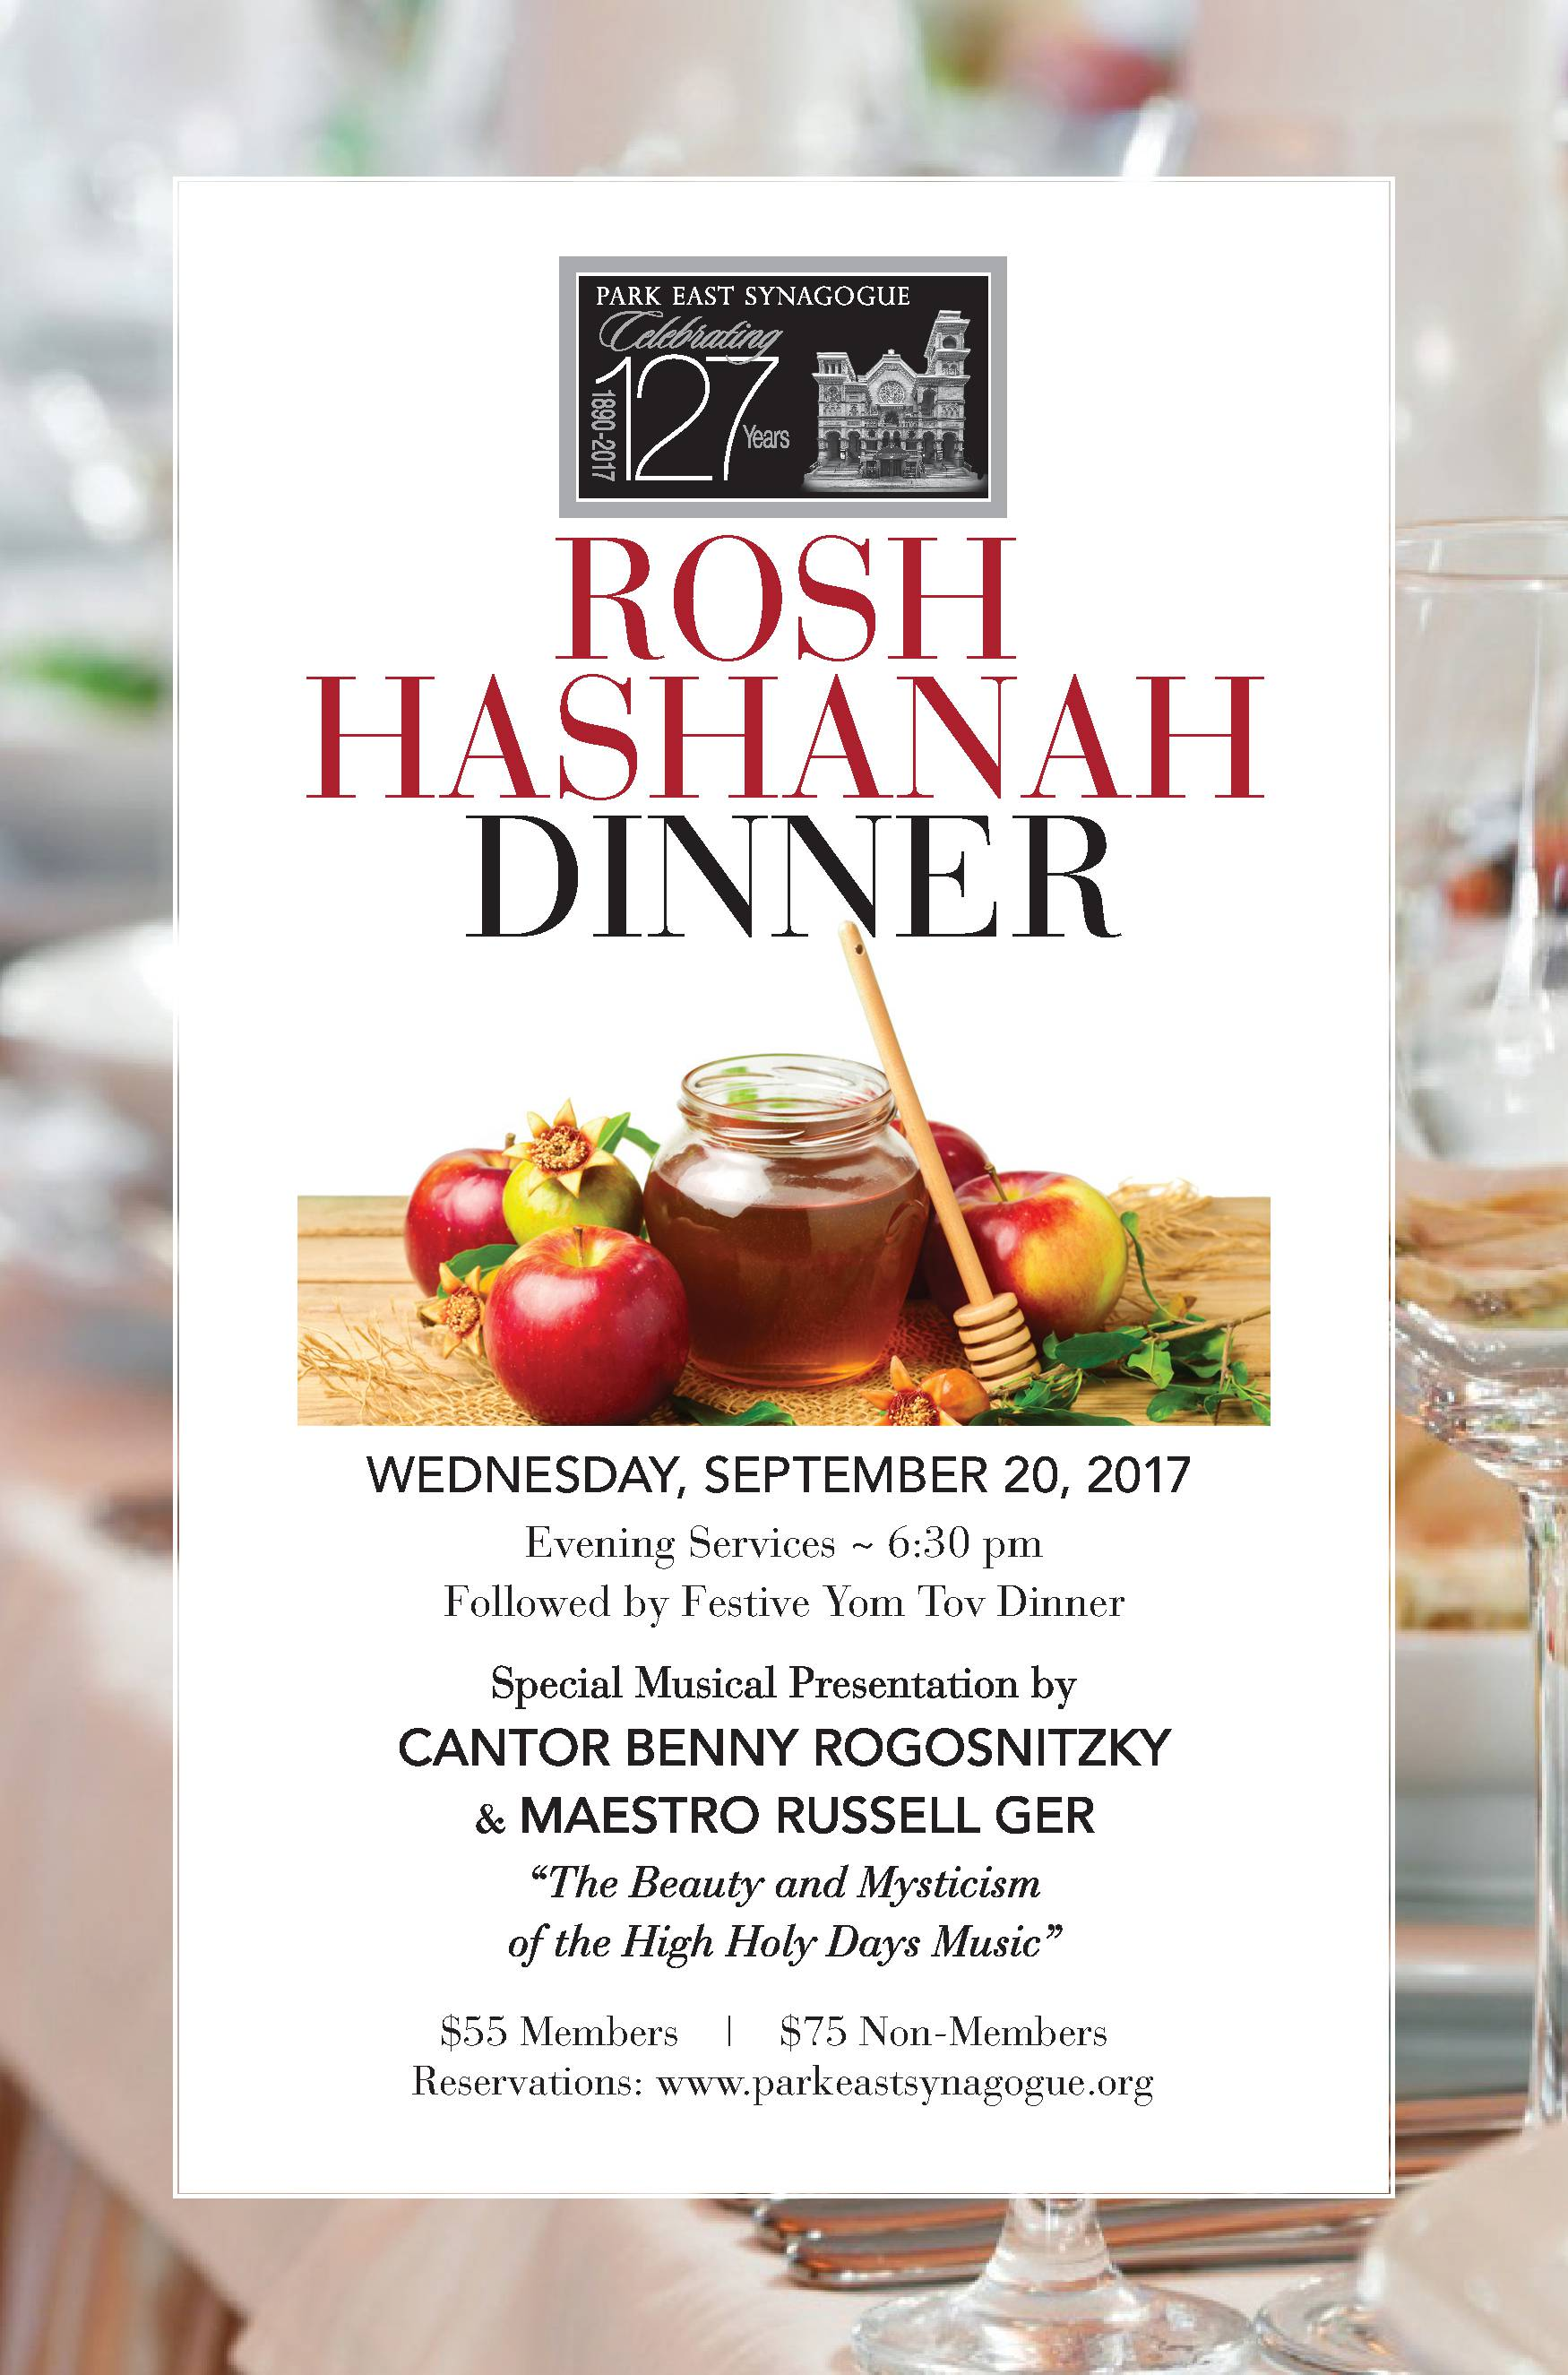 Rosh Hashanah Dinner – Park East Synagogue